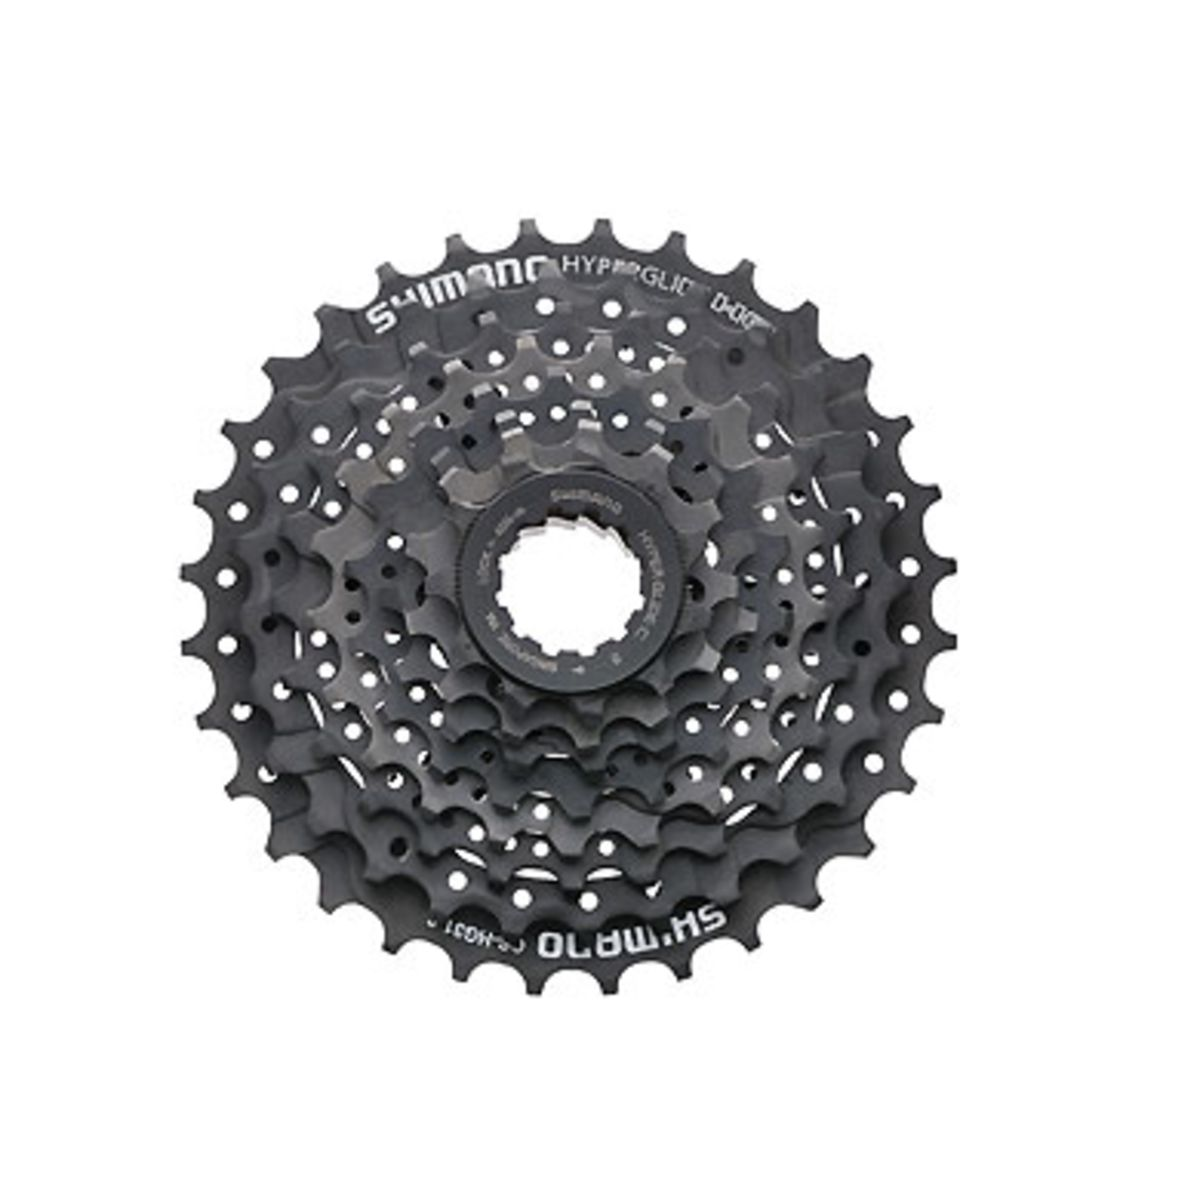 CS-HG 31 8-speed cassette